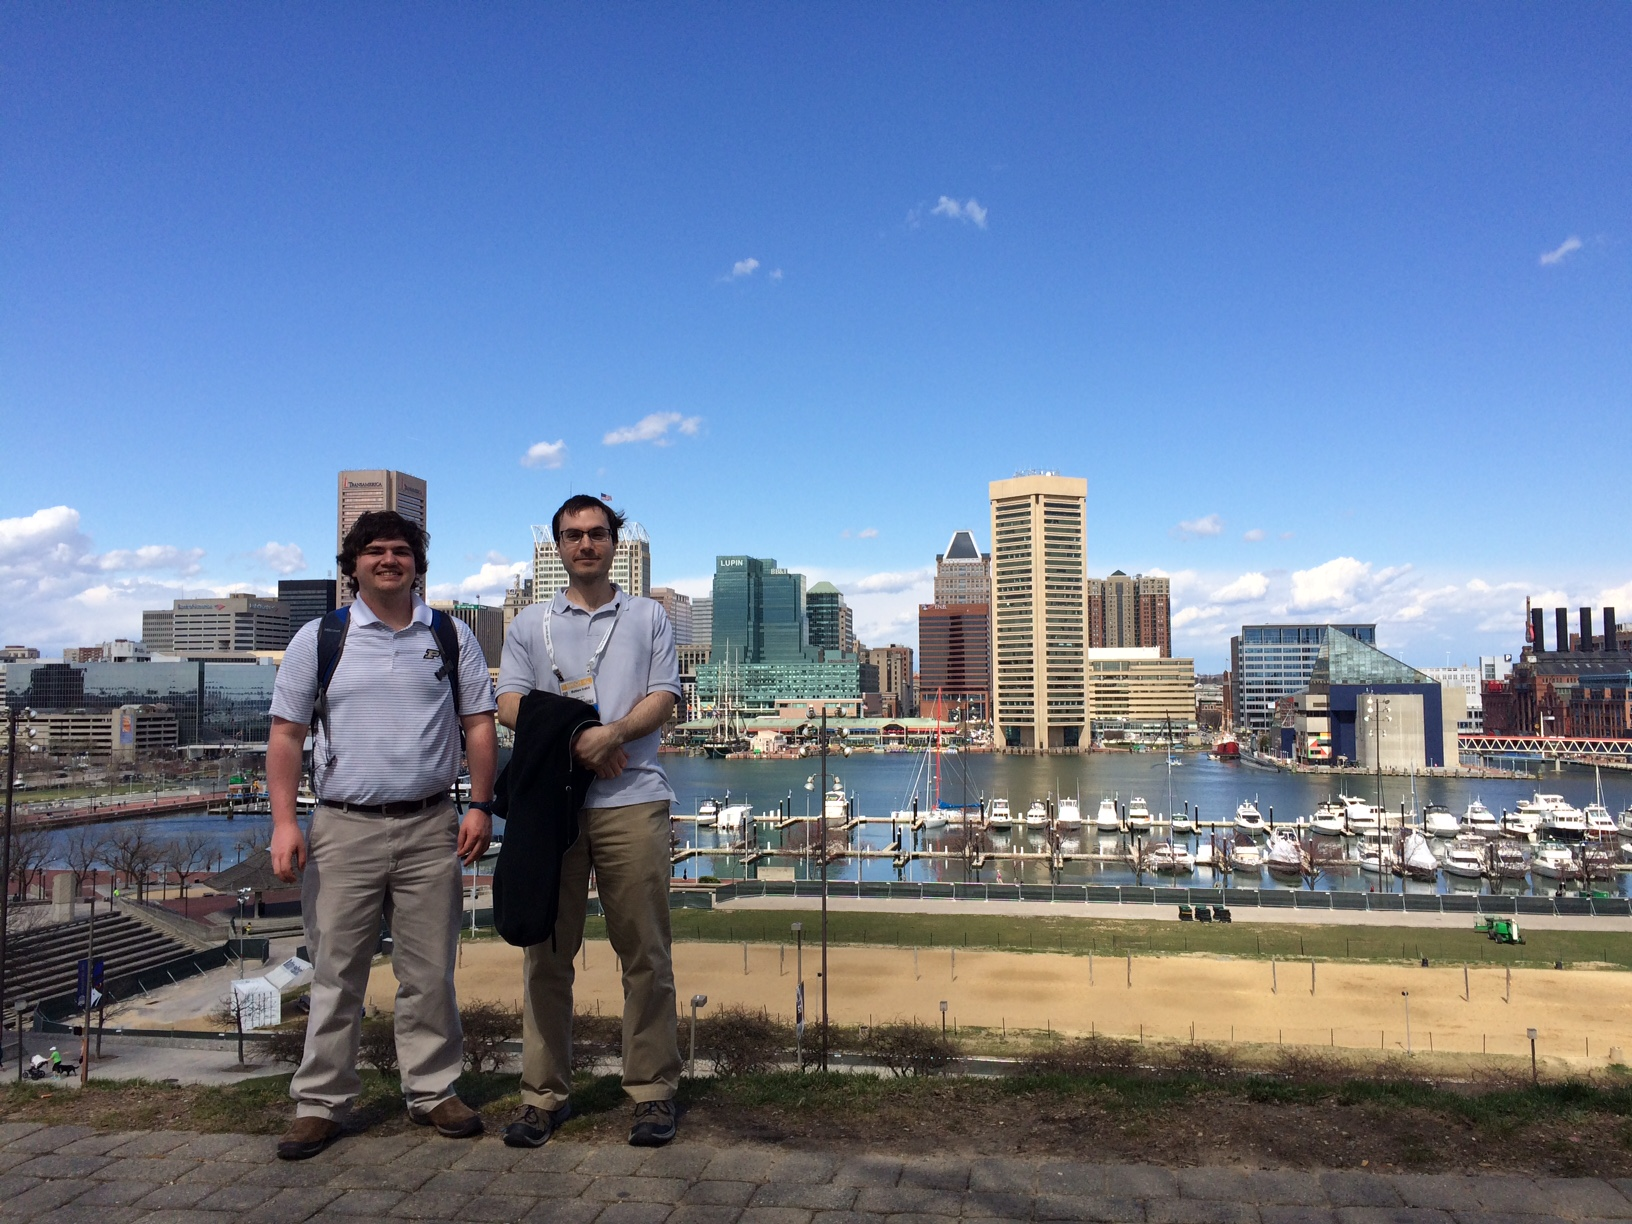 Baltimore skyline at APS March Meeting 2016